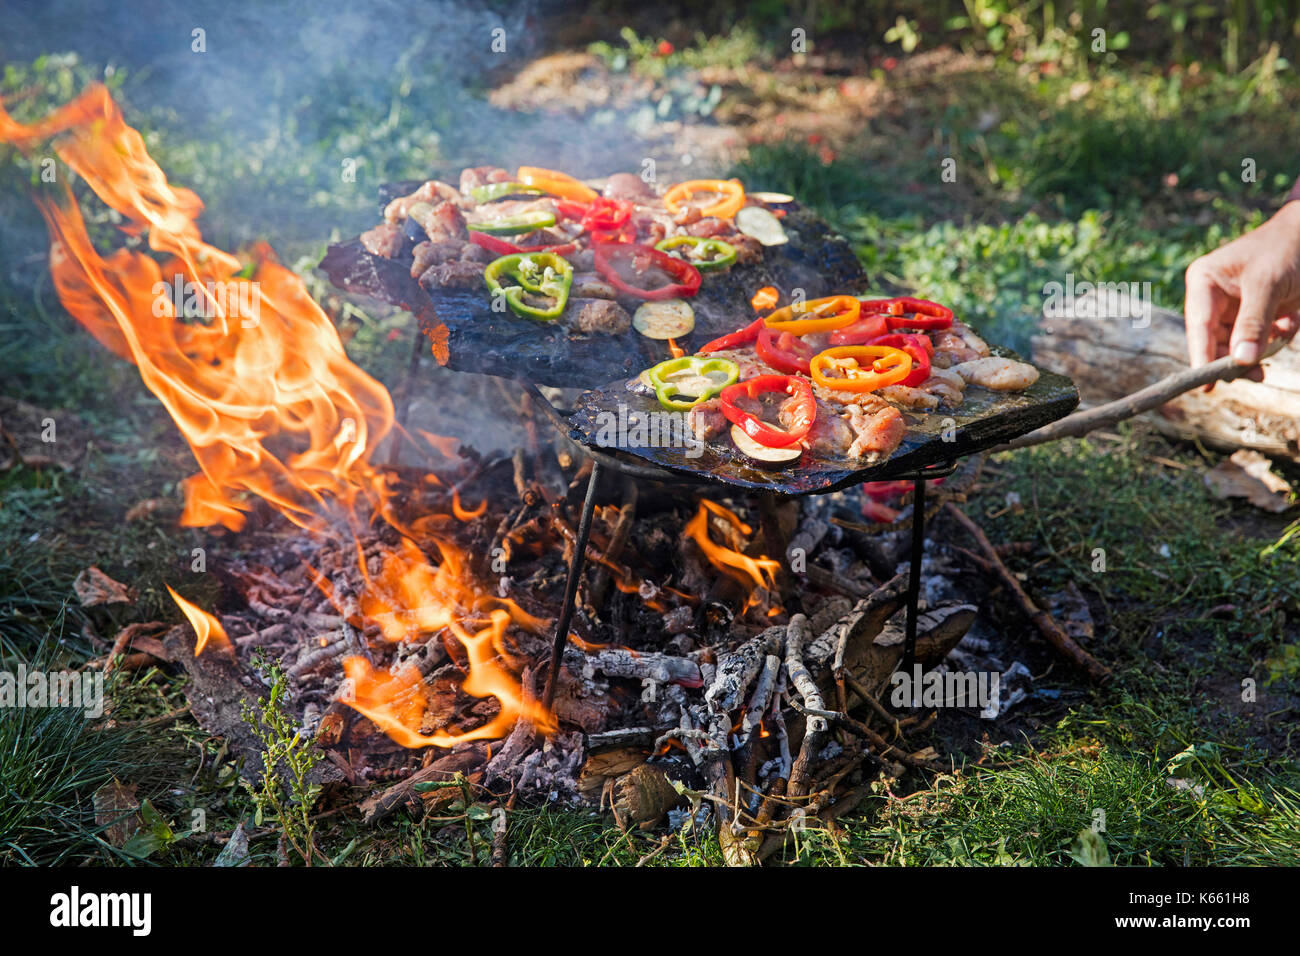 Meat, bell peppers and vegetables cooked on a traditional stone barbecue in Kyrgyzstan - Stock Image